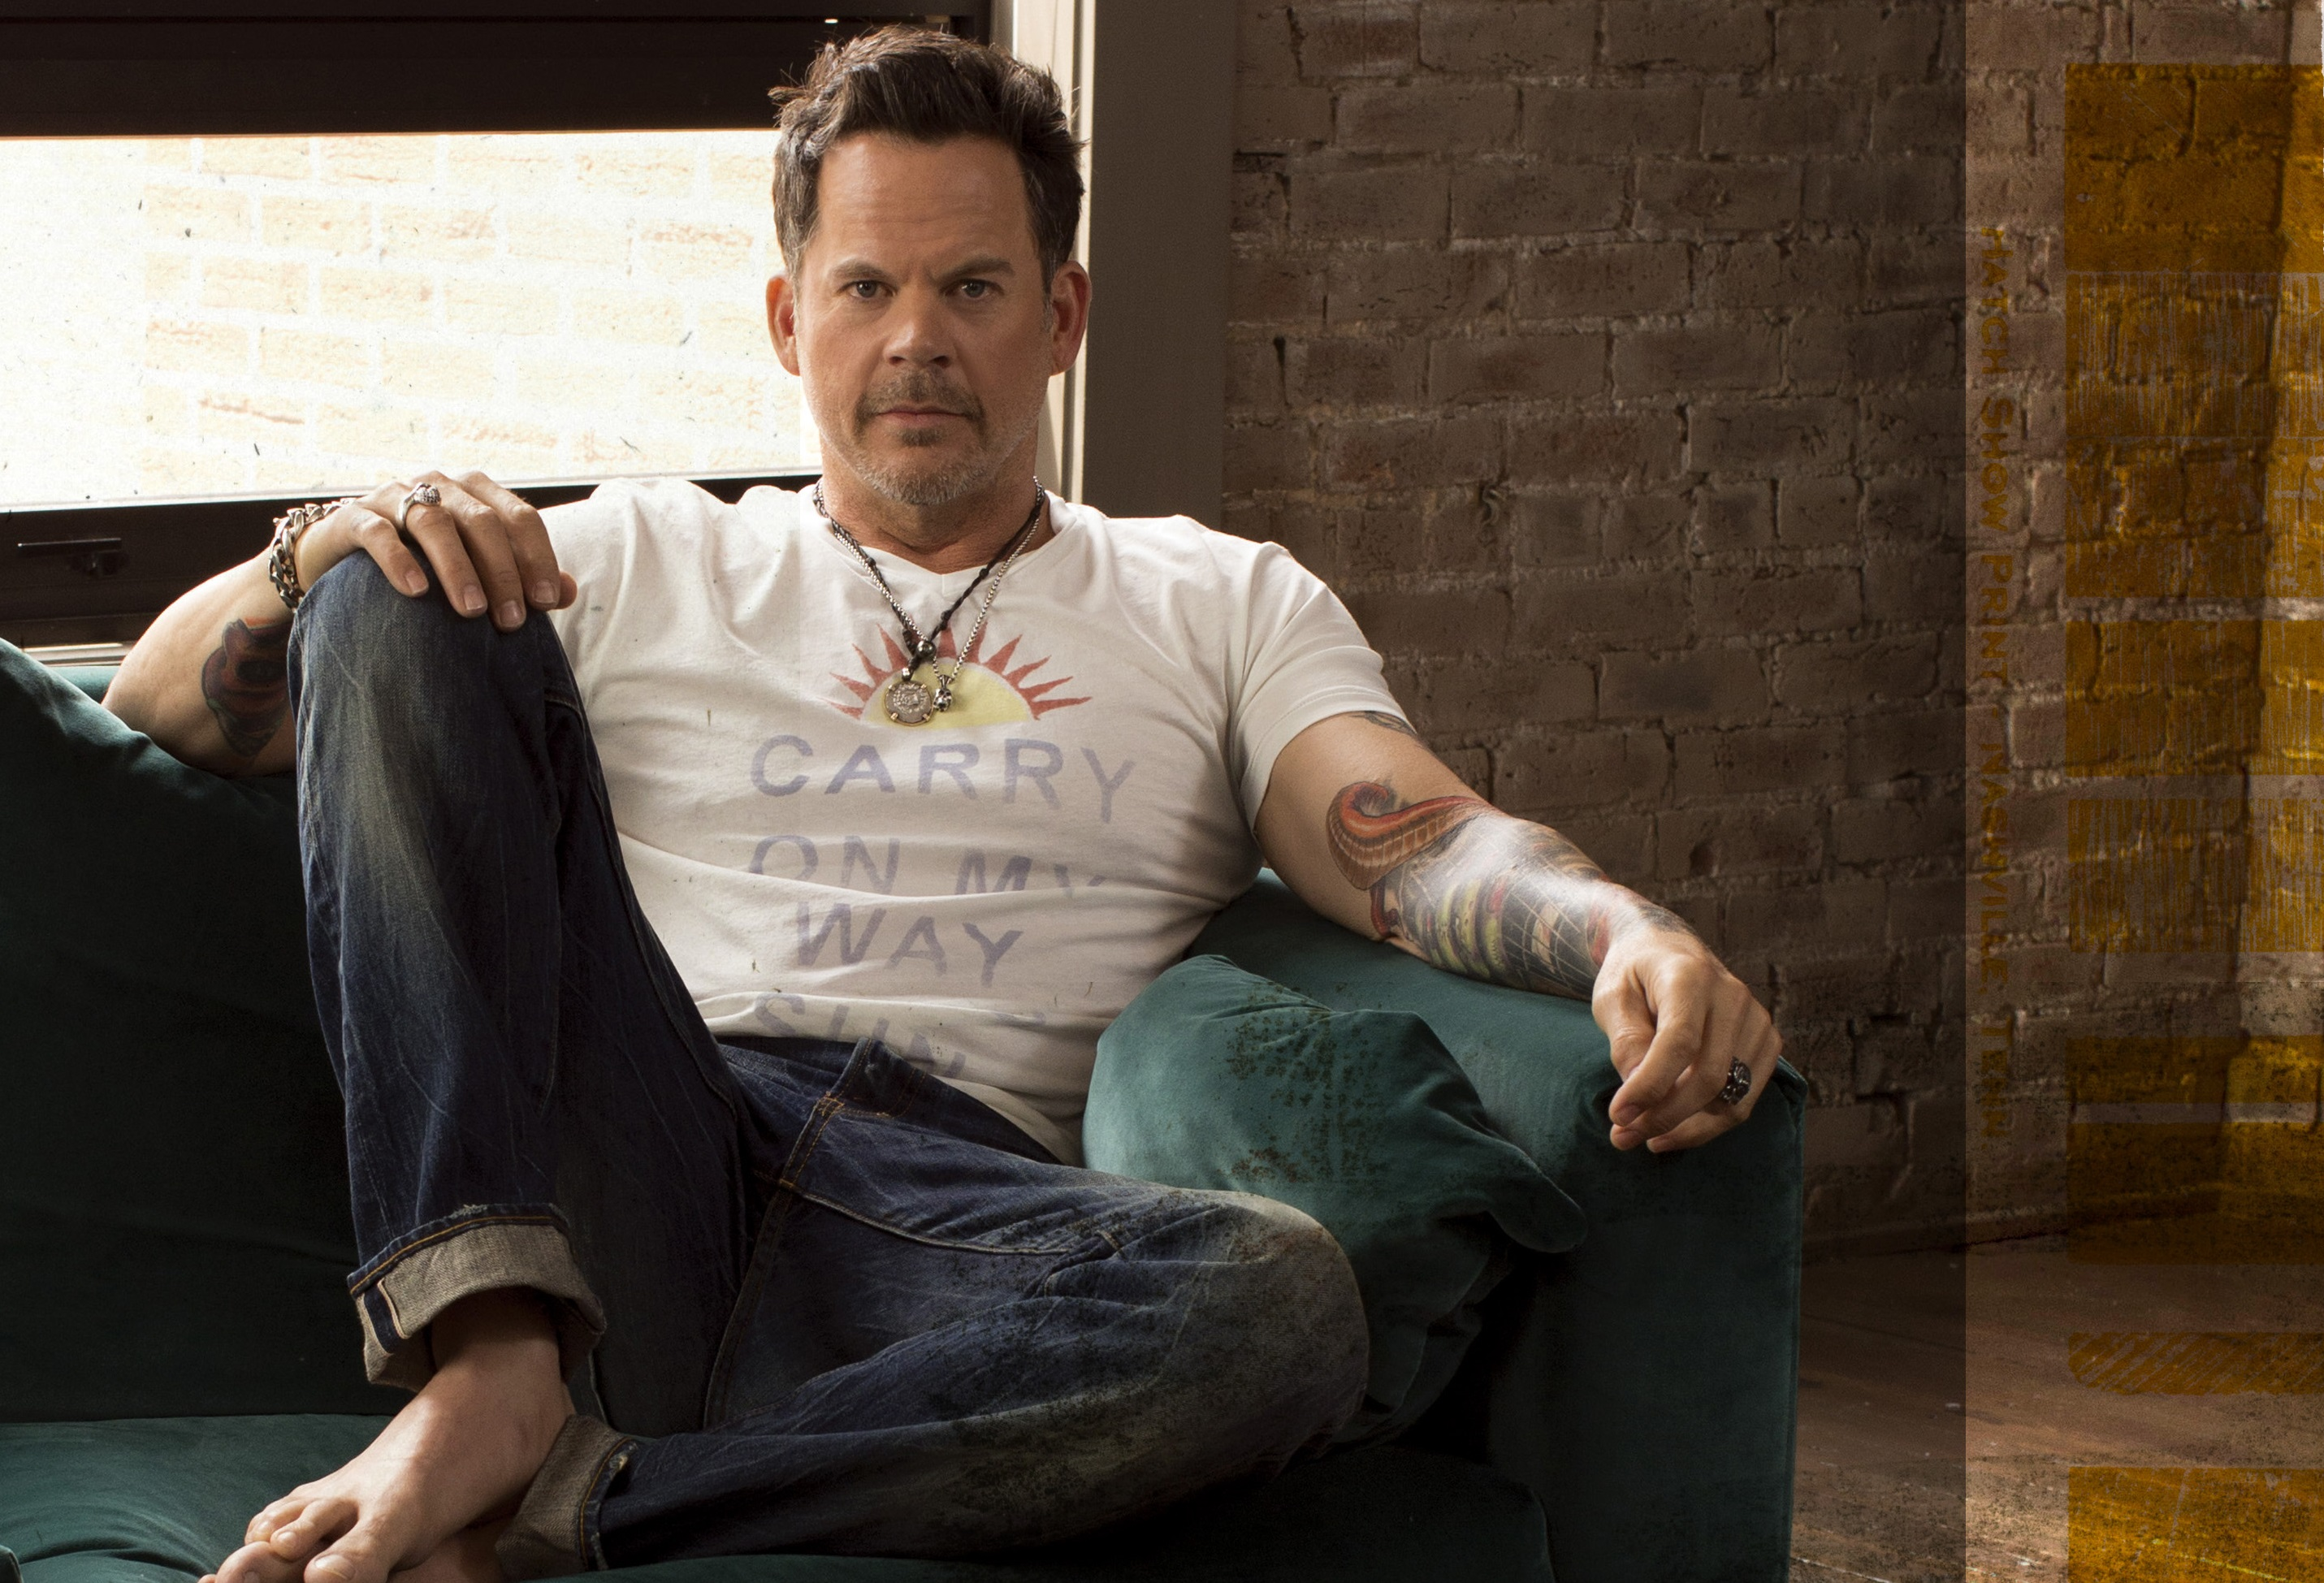 Gary allan wants to mess us up